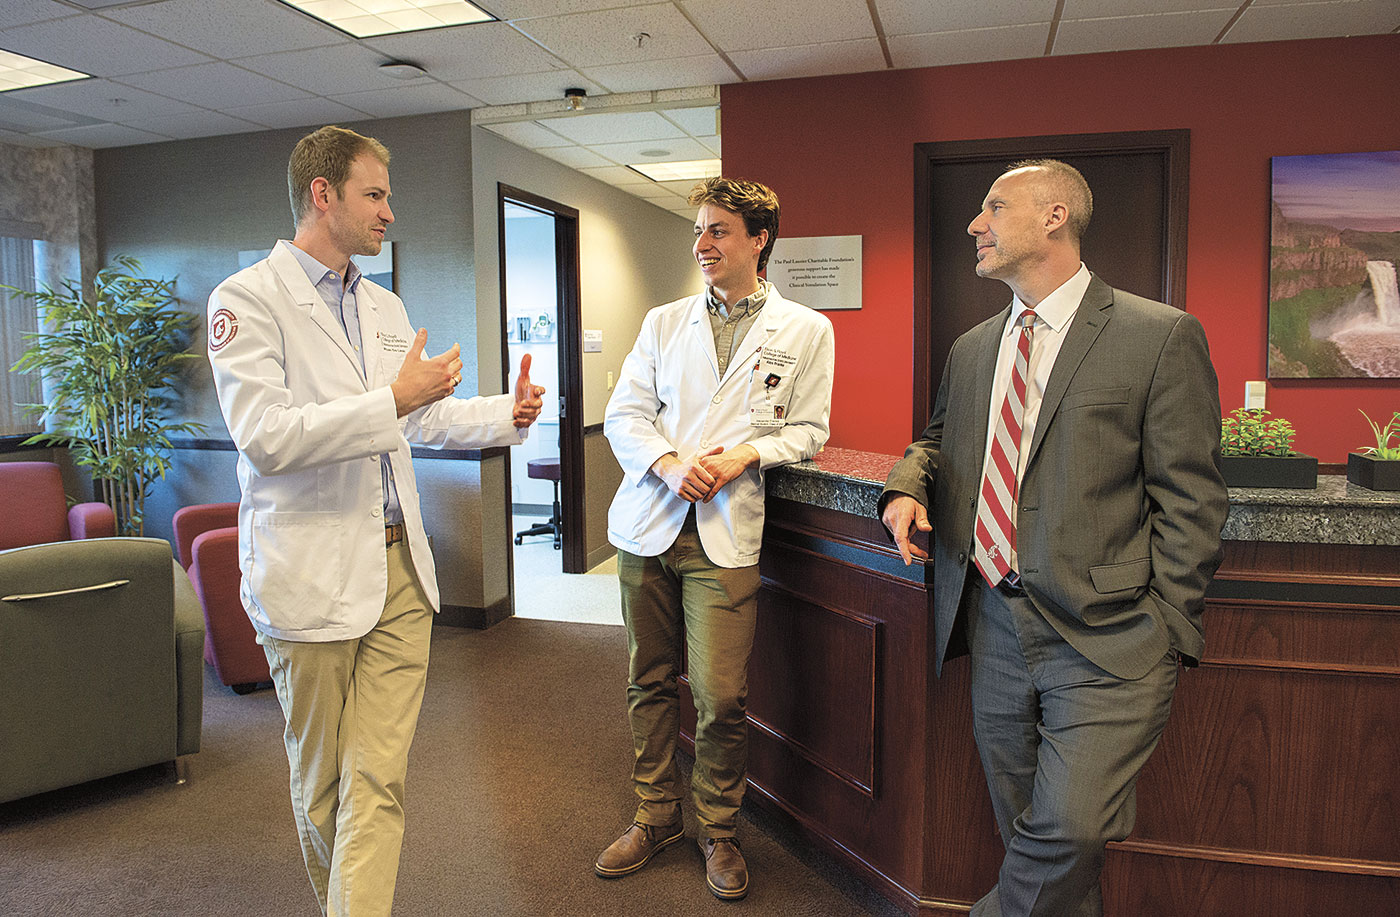 WSU Elson S. Floyd College of Medicine Dean John Tomkowiak talks with medical doctor students Alex Franke and Ryan de Leon